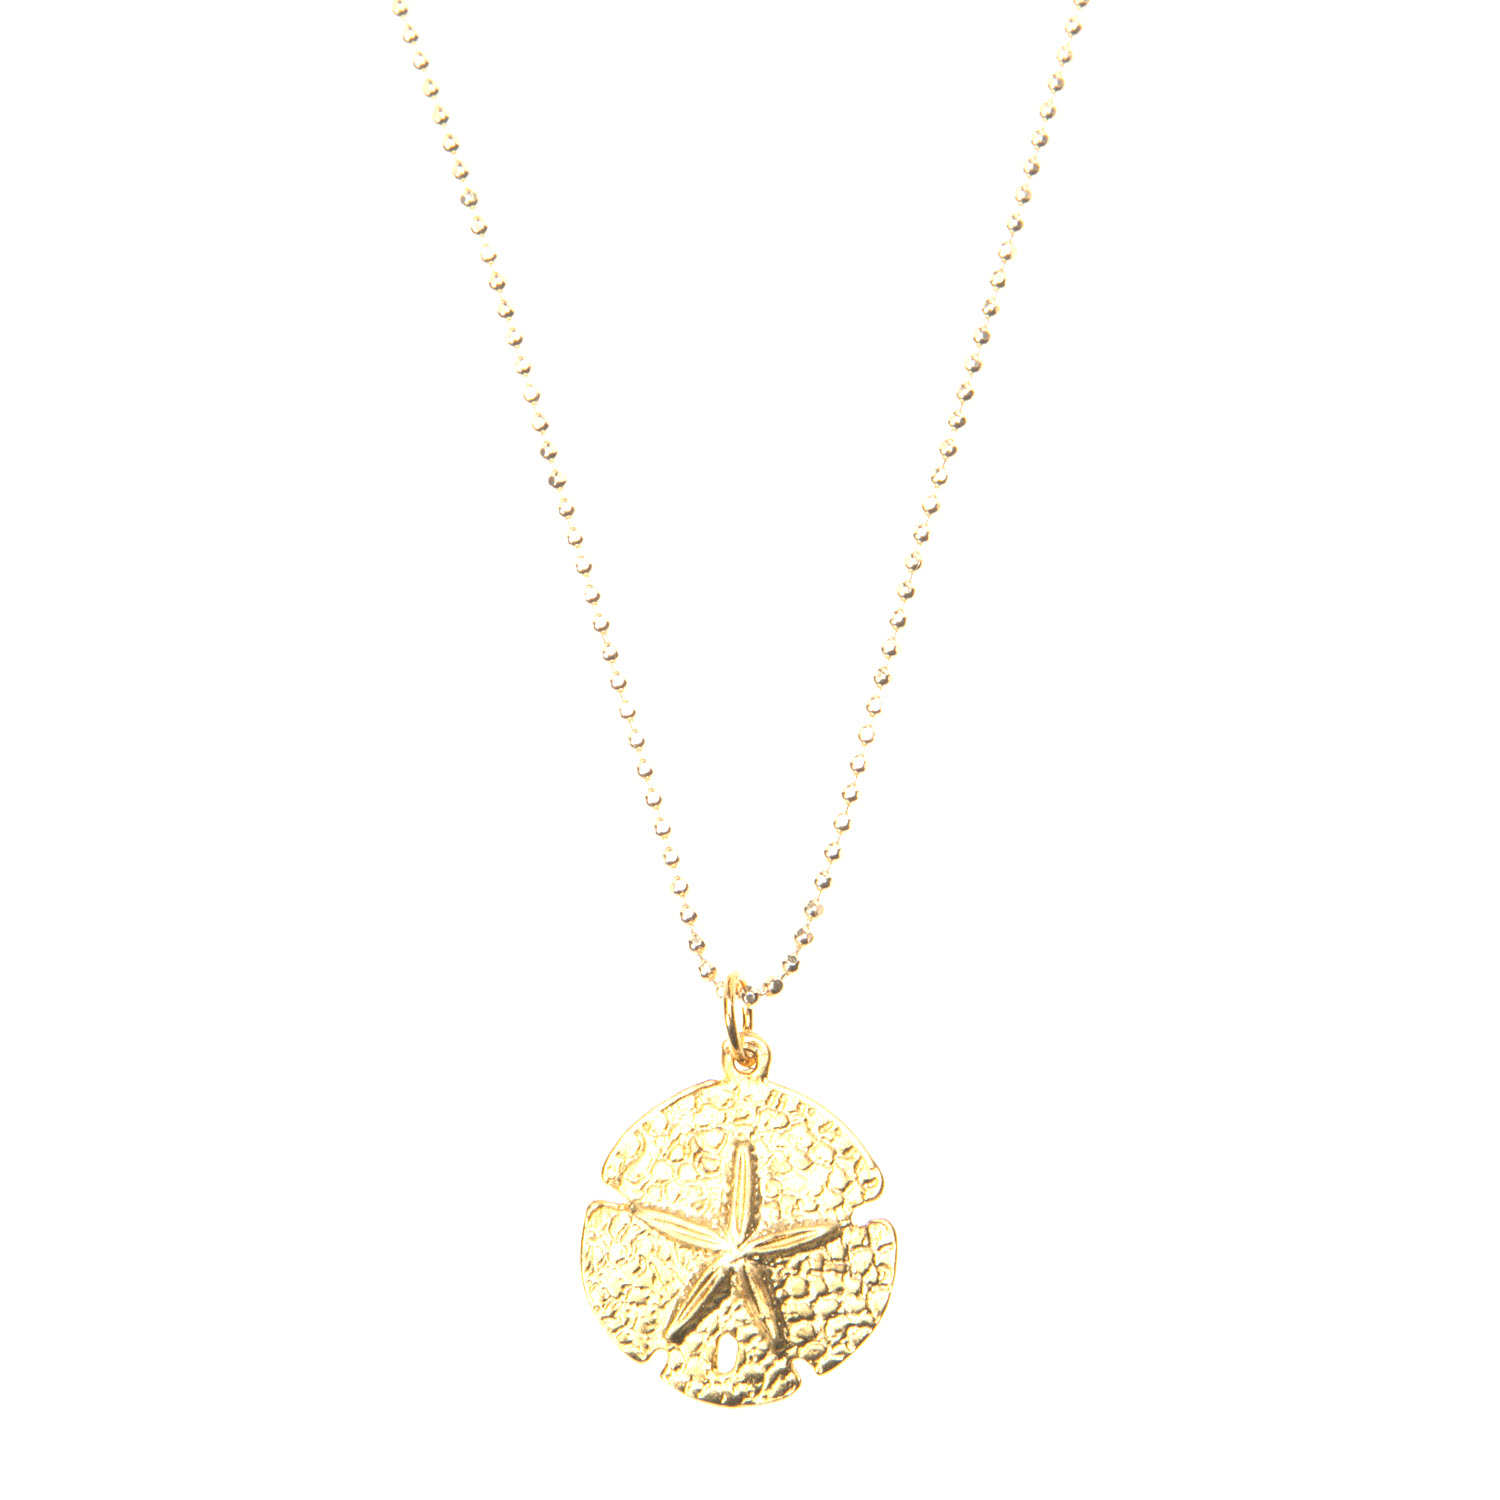 Gold Vermeil Diamond Cut Chain with Gold Vermeil Sand Dollar Charm Pendant